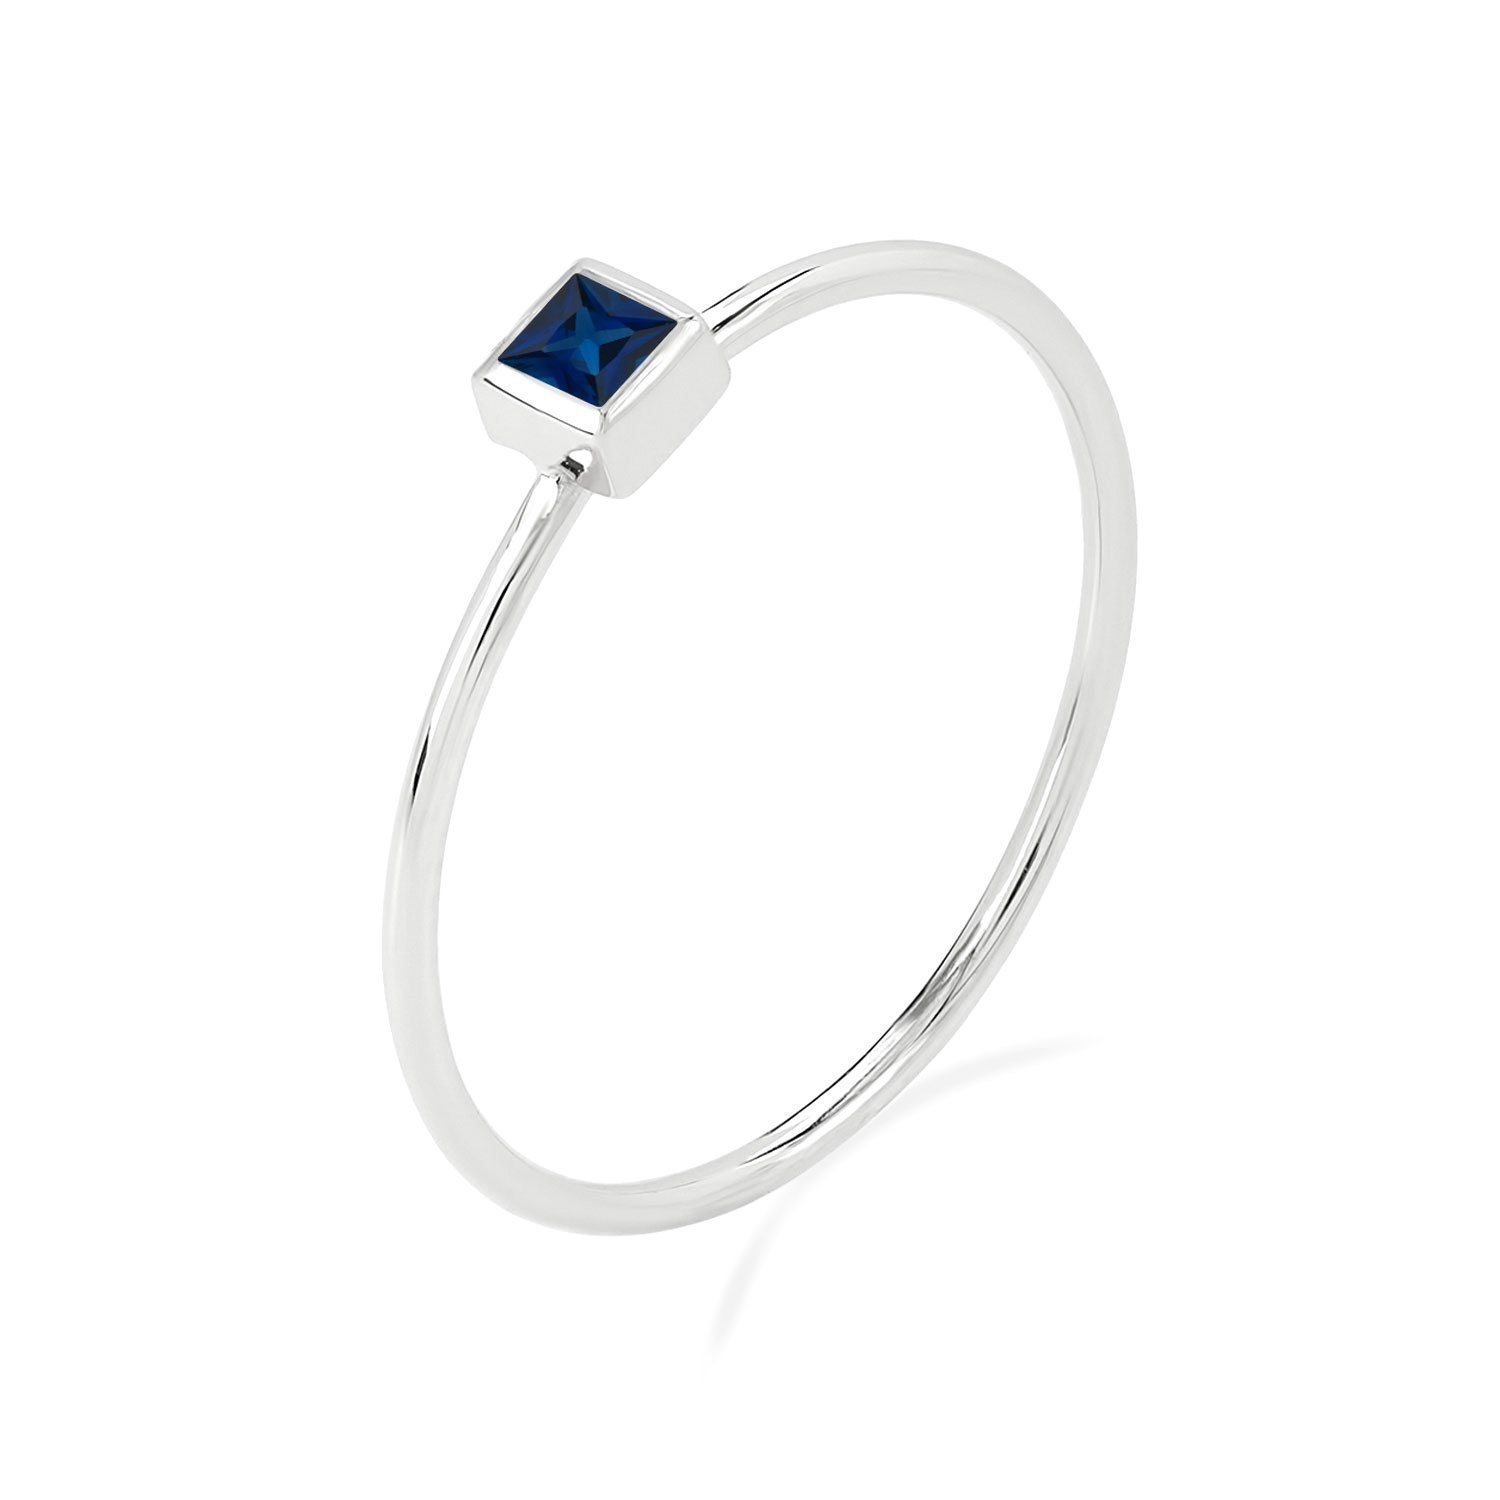 BallucciToosi Sapphire Ring - 14k Gold Stacking Band with Natural Blue Square Stone for Women - Solitaire Stackable Rings for Her